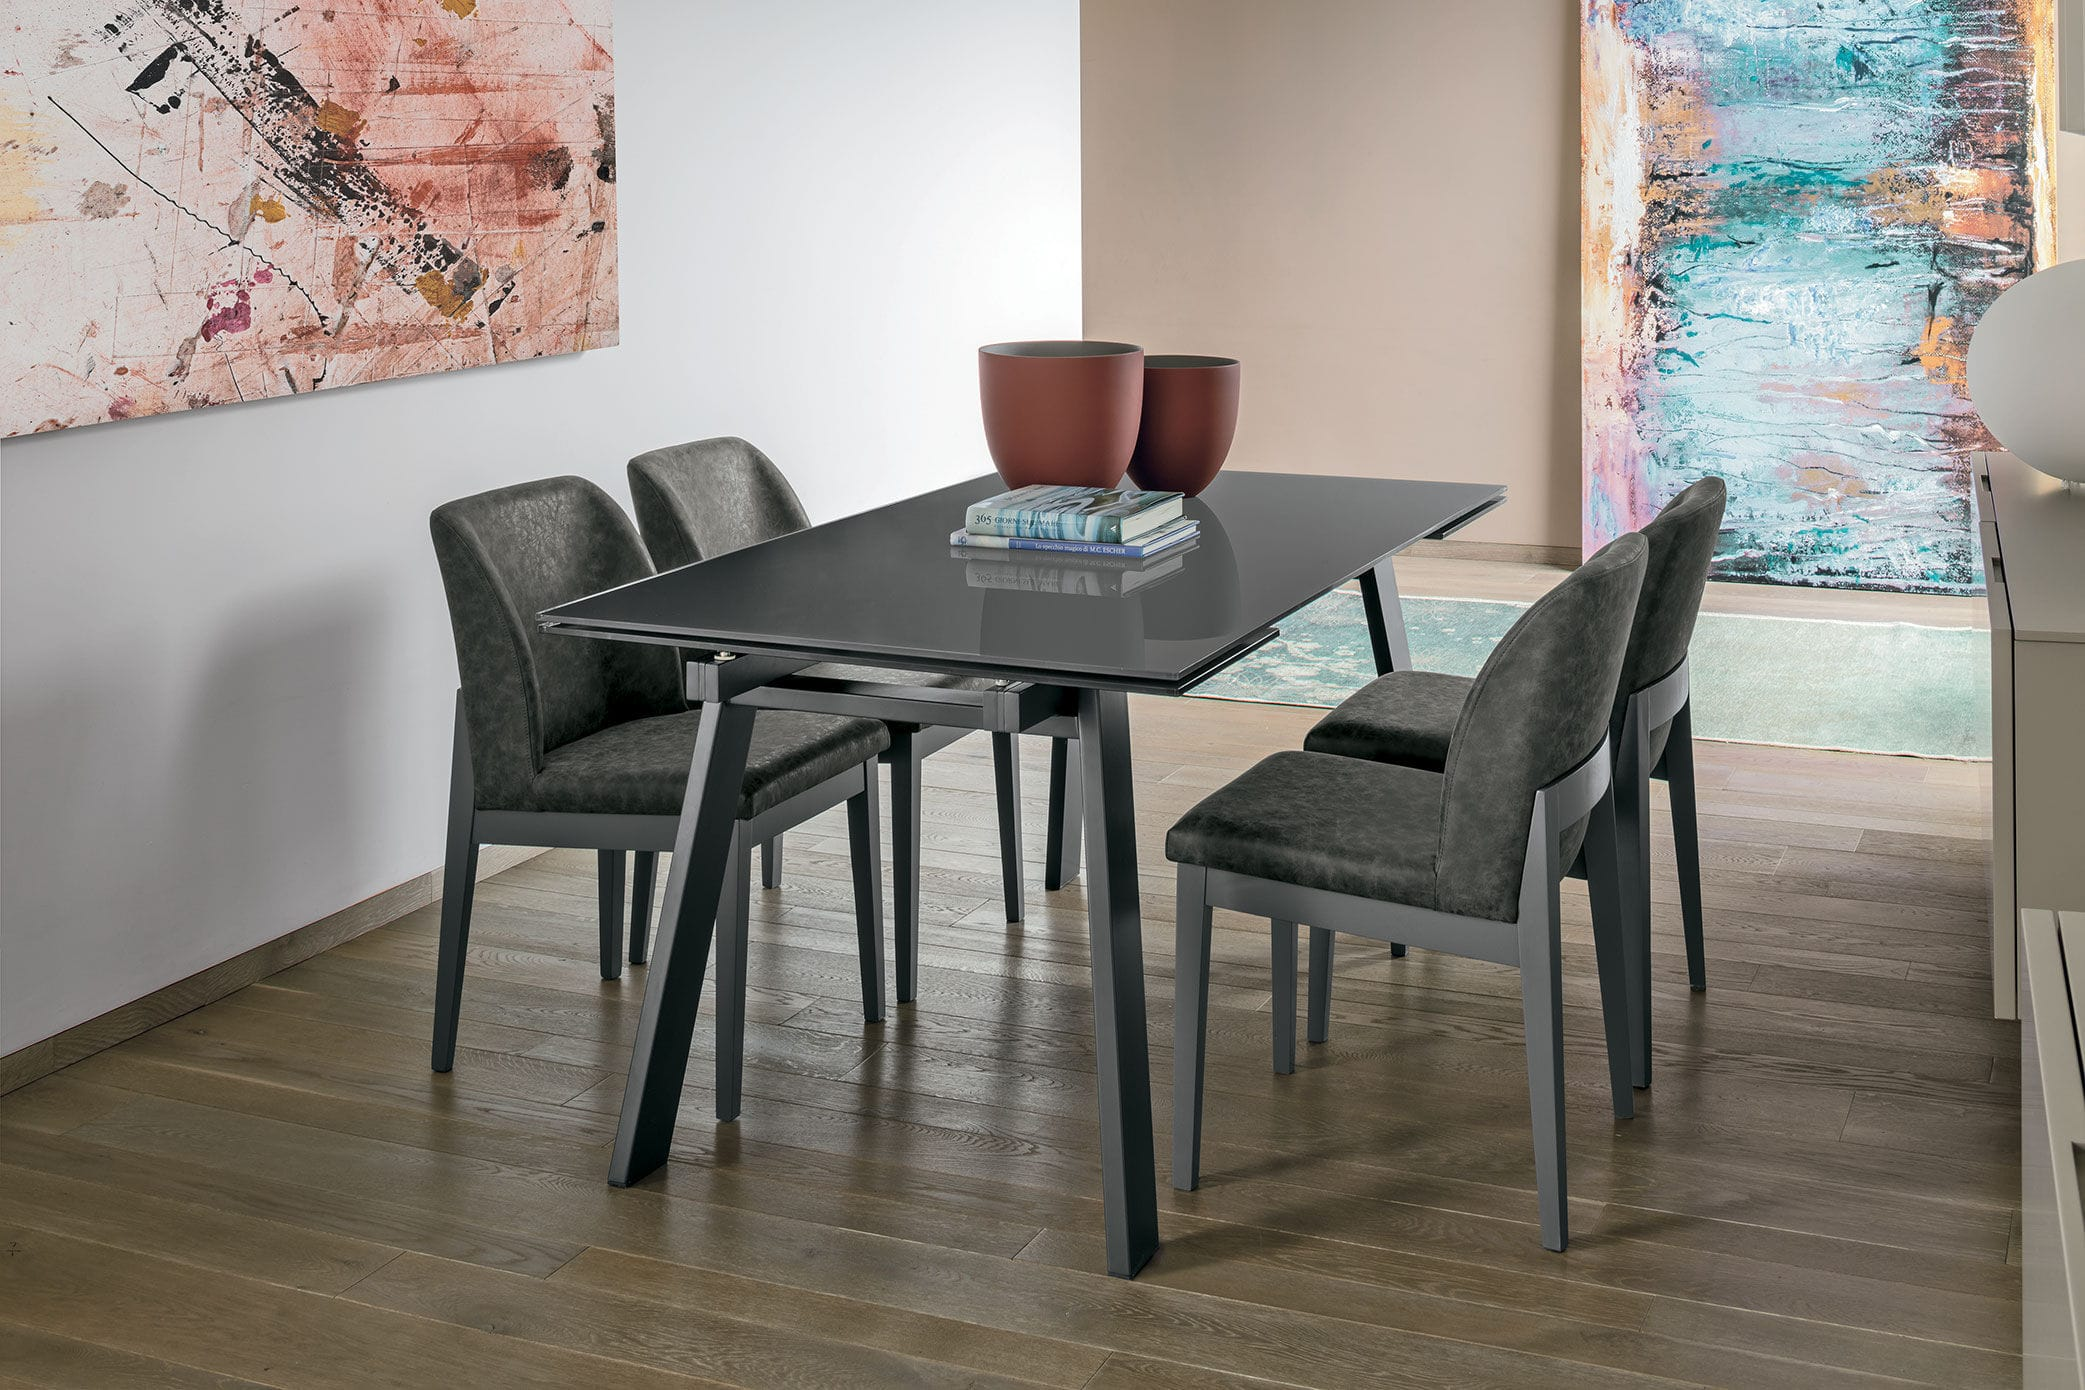 Contemporary dining table / tempered glass / metal / porcelain ...